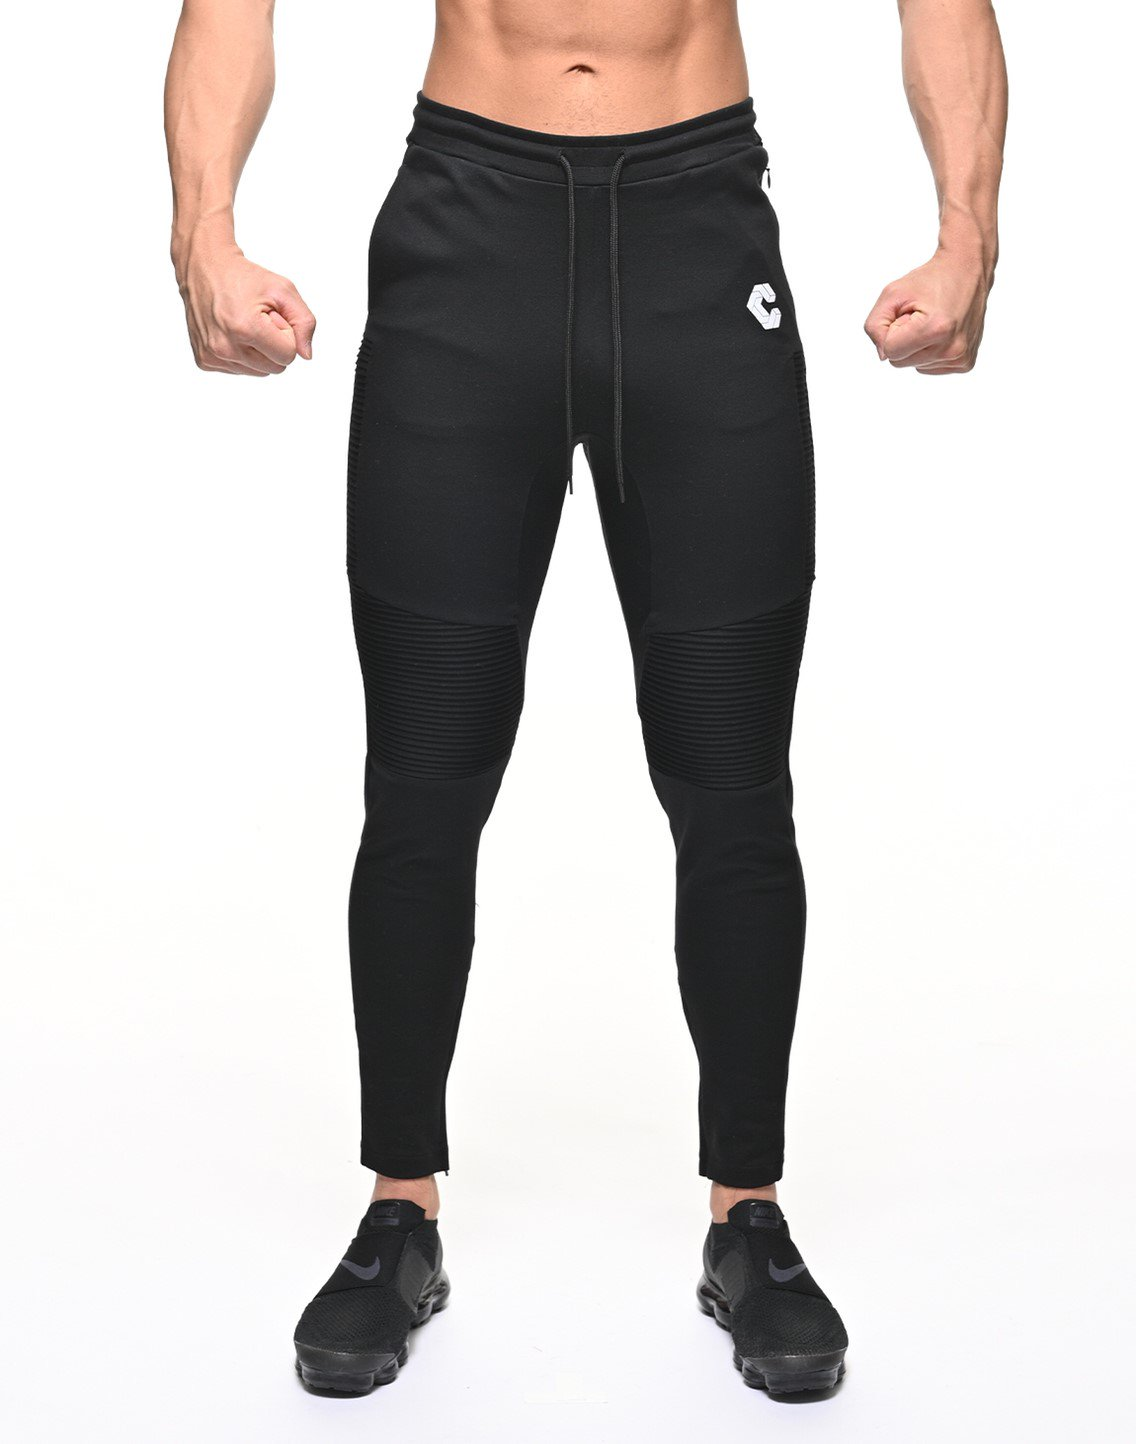 <img class='new_mark_img1' src='https://img.shop-pro.jp/img/new/icons55.gif' style='border:none;display:inline;margin:0px;padding:0px;width:auto;' />CRONOS BIKER PANTS【BLACK】